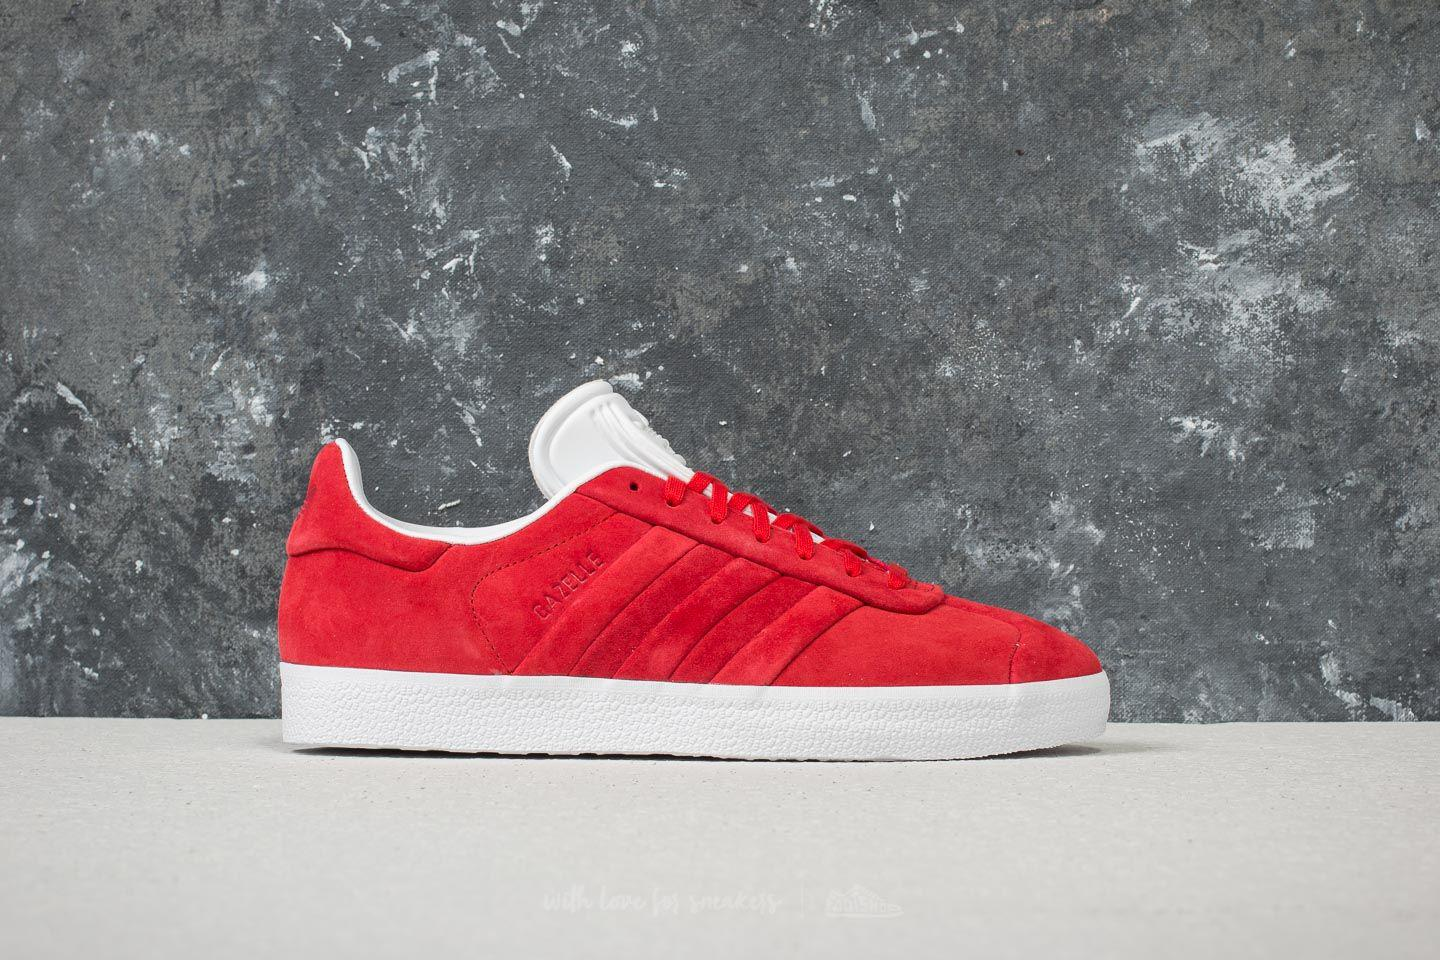 adidas Adidas Gazelle Stitch And Turn Collegiate / Collegiate / Ftw White ipiuj3LeuG